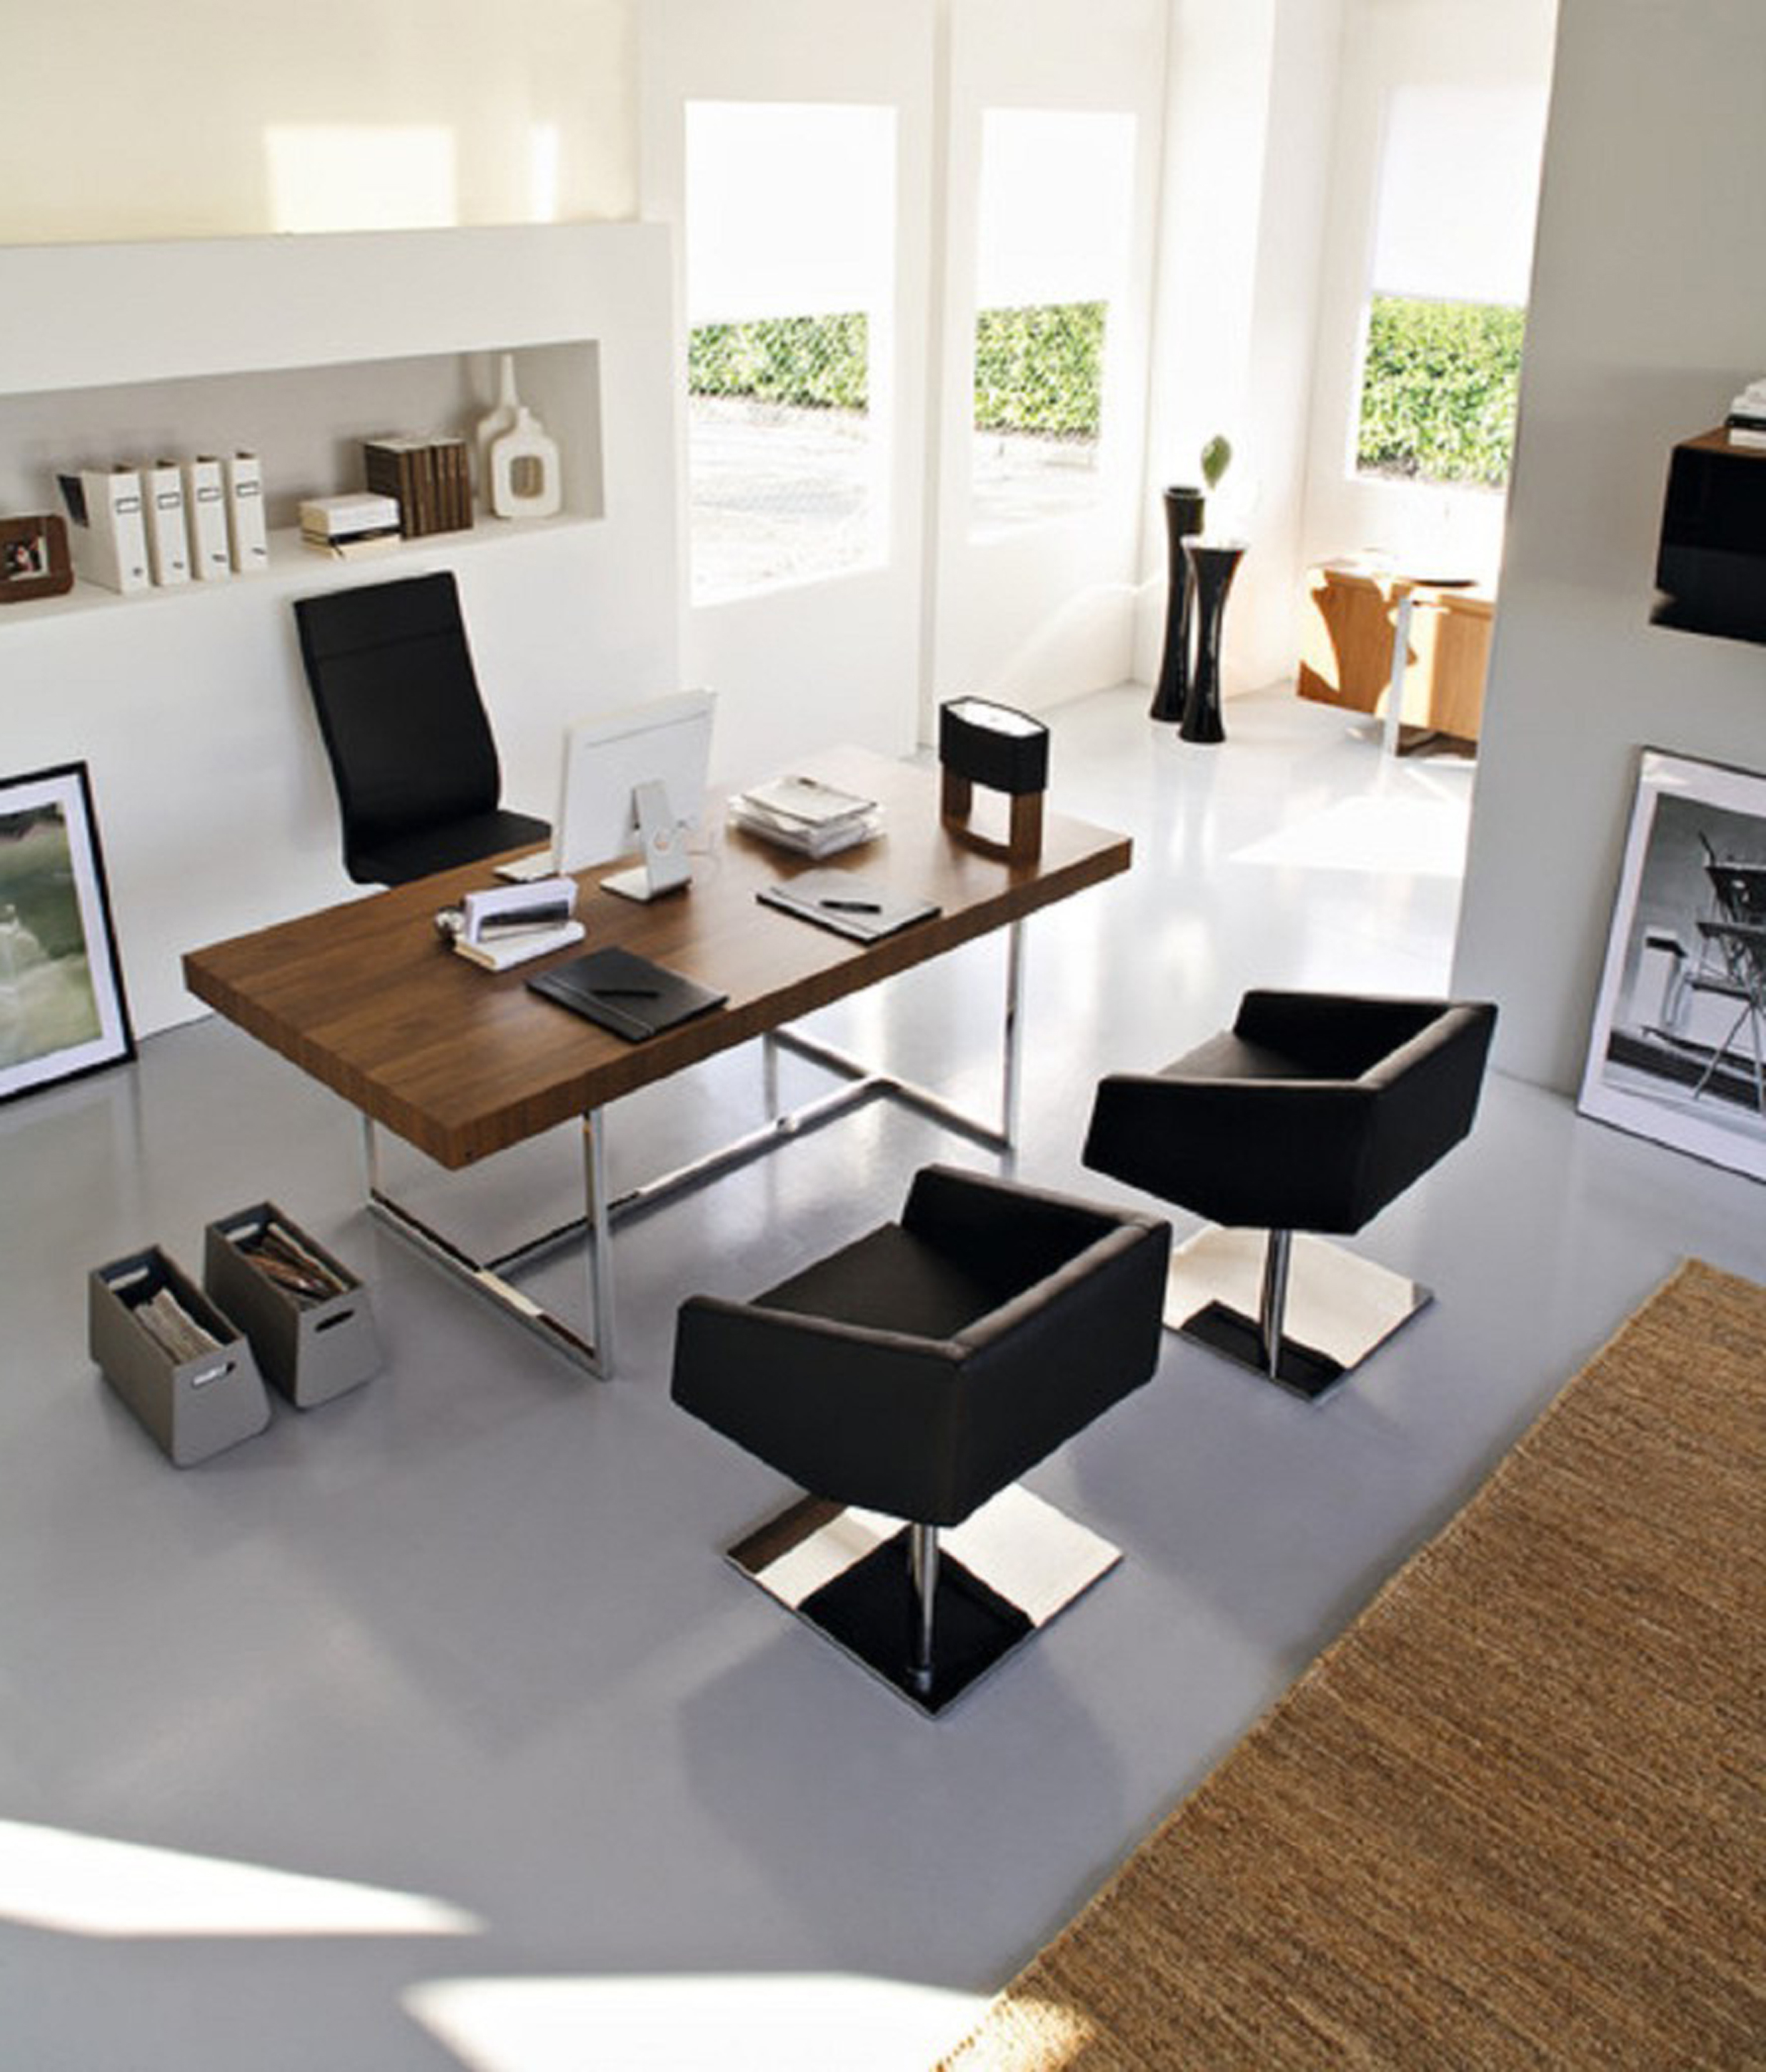 Best modern home office decorating ideas 14089 interior for Modern white office